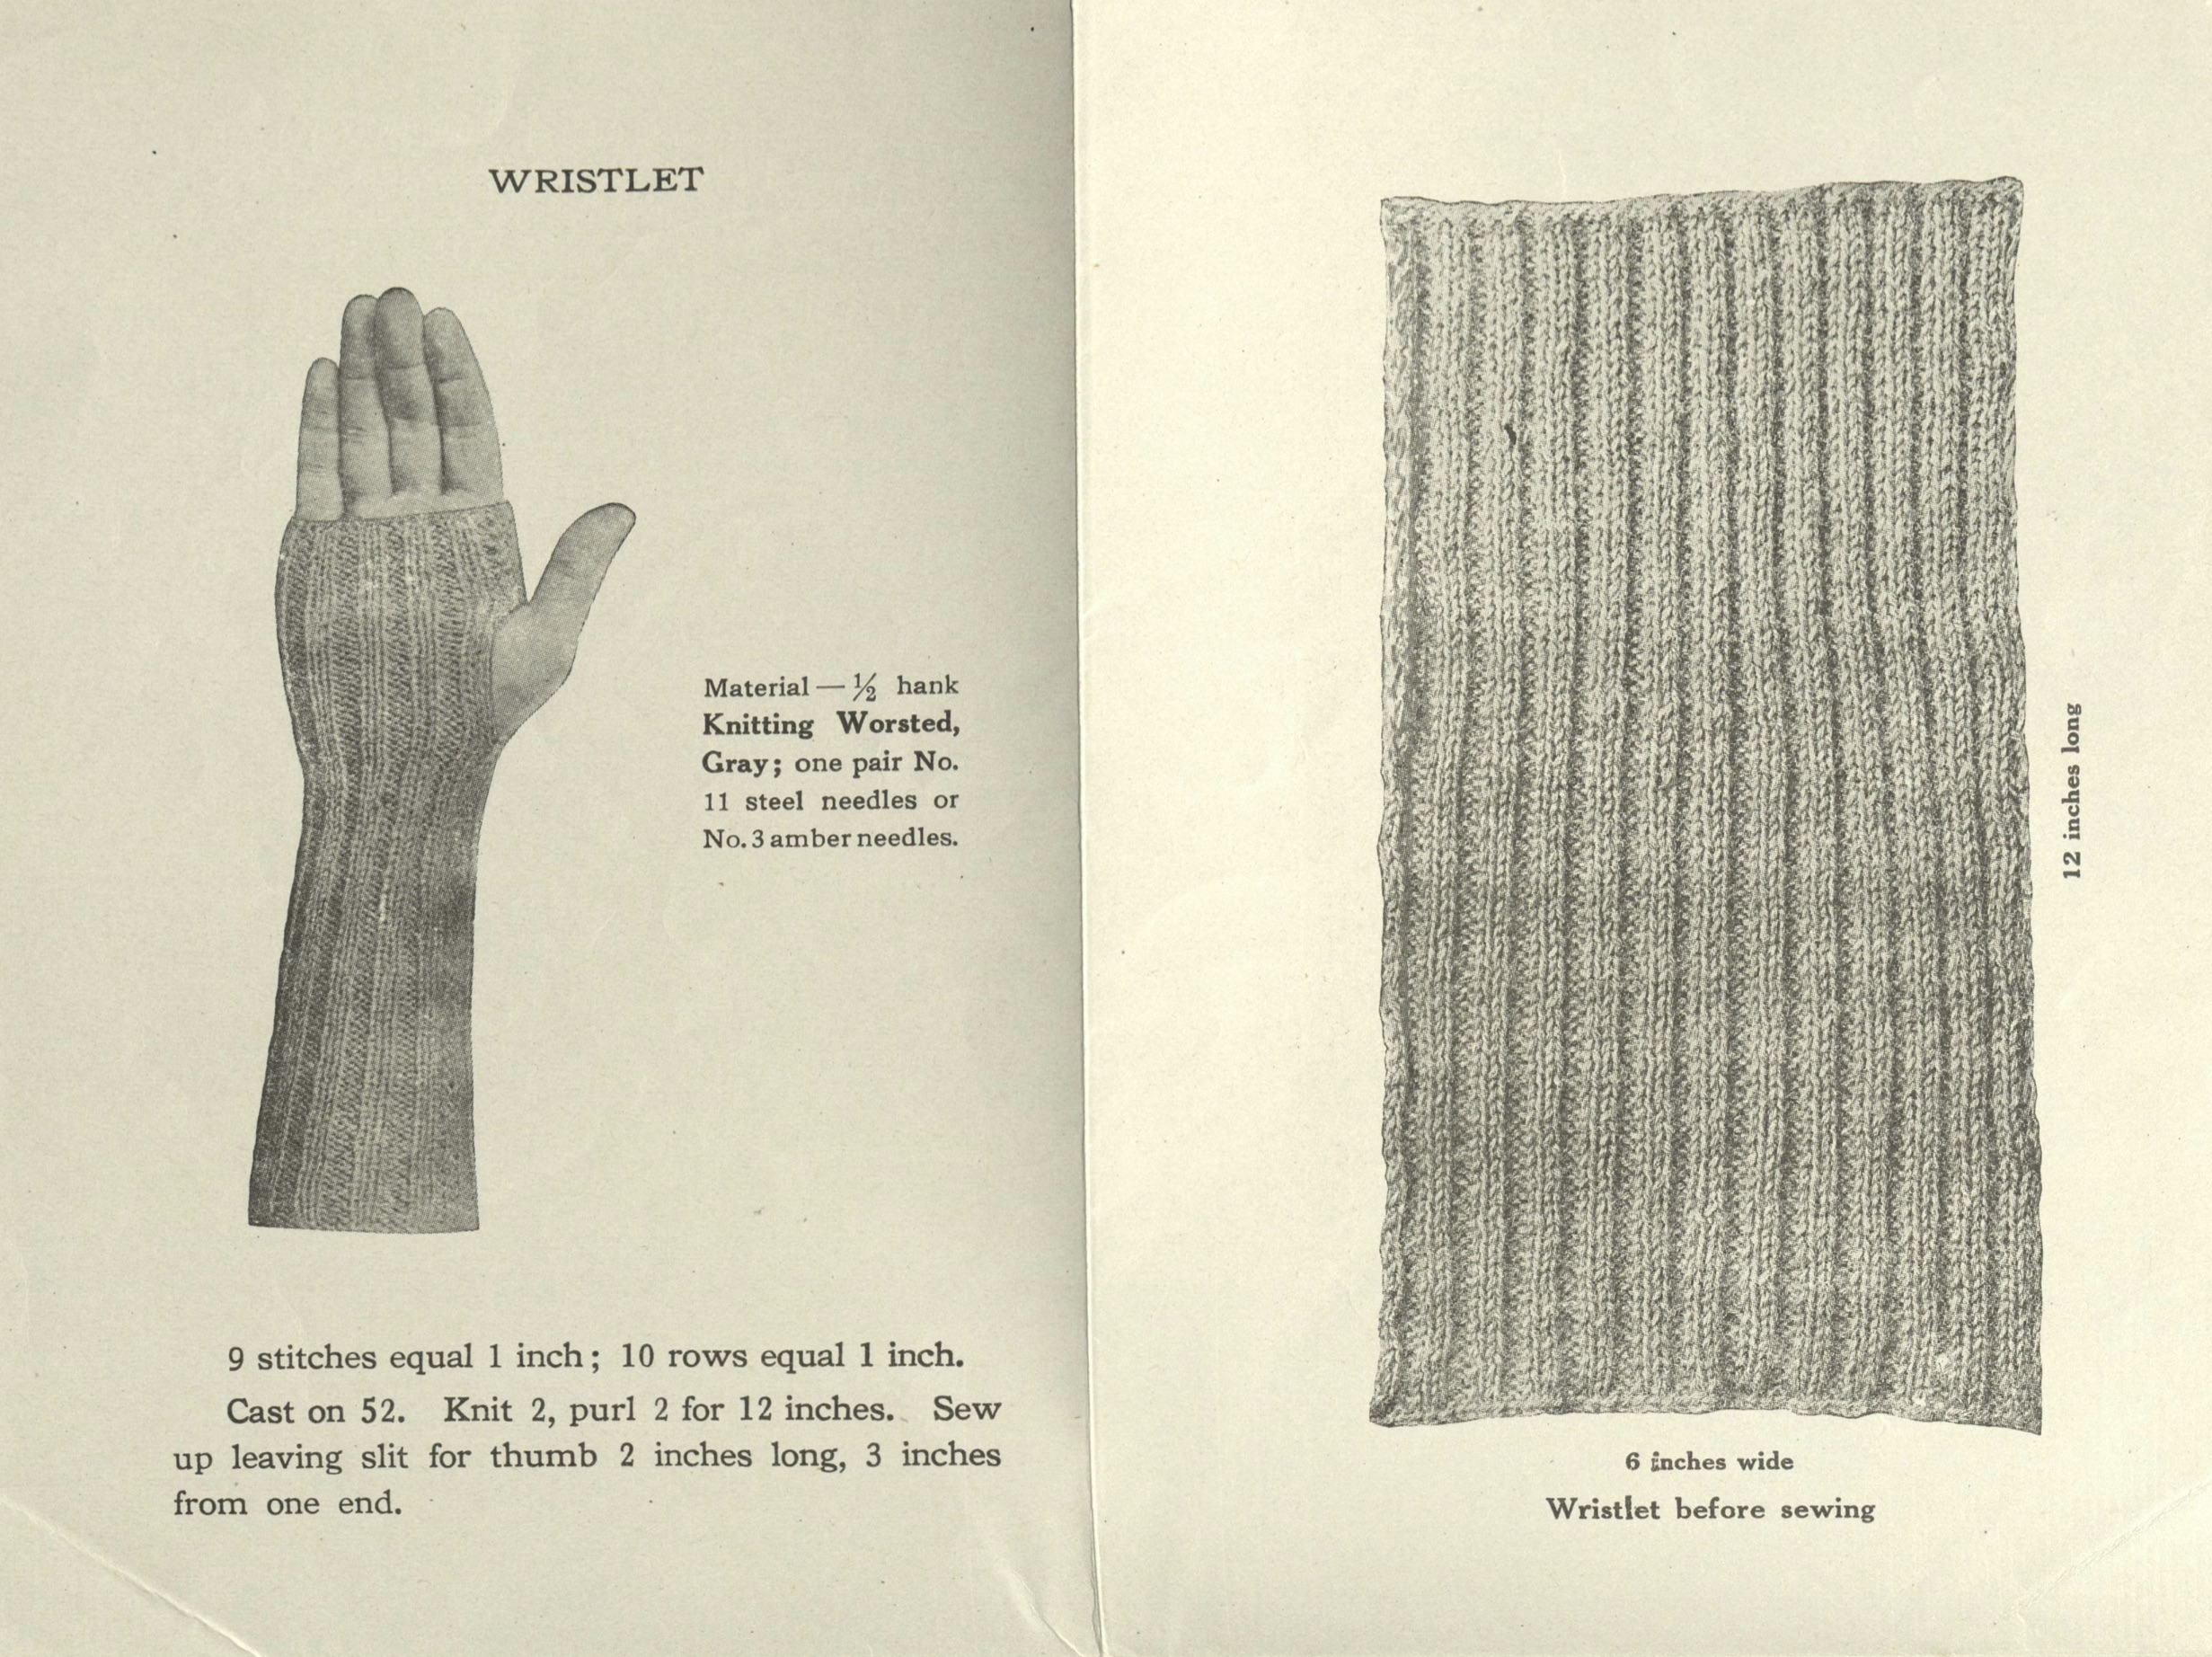 Patterns from Knitted Comforts for Our Men in Naval Service. 1917. Winterthur Rare Books Collection. Winterthur Museum, Gardens, and Library.